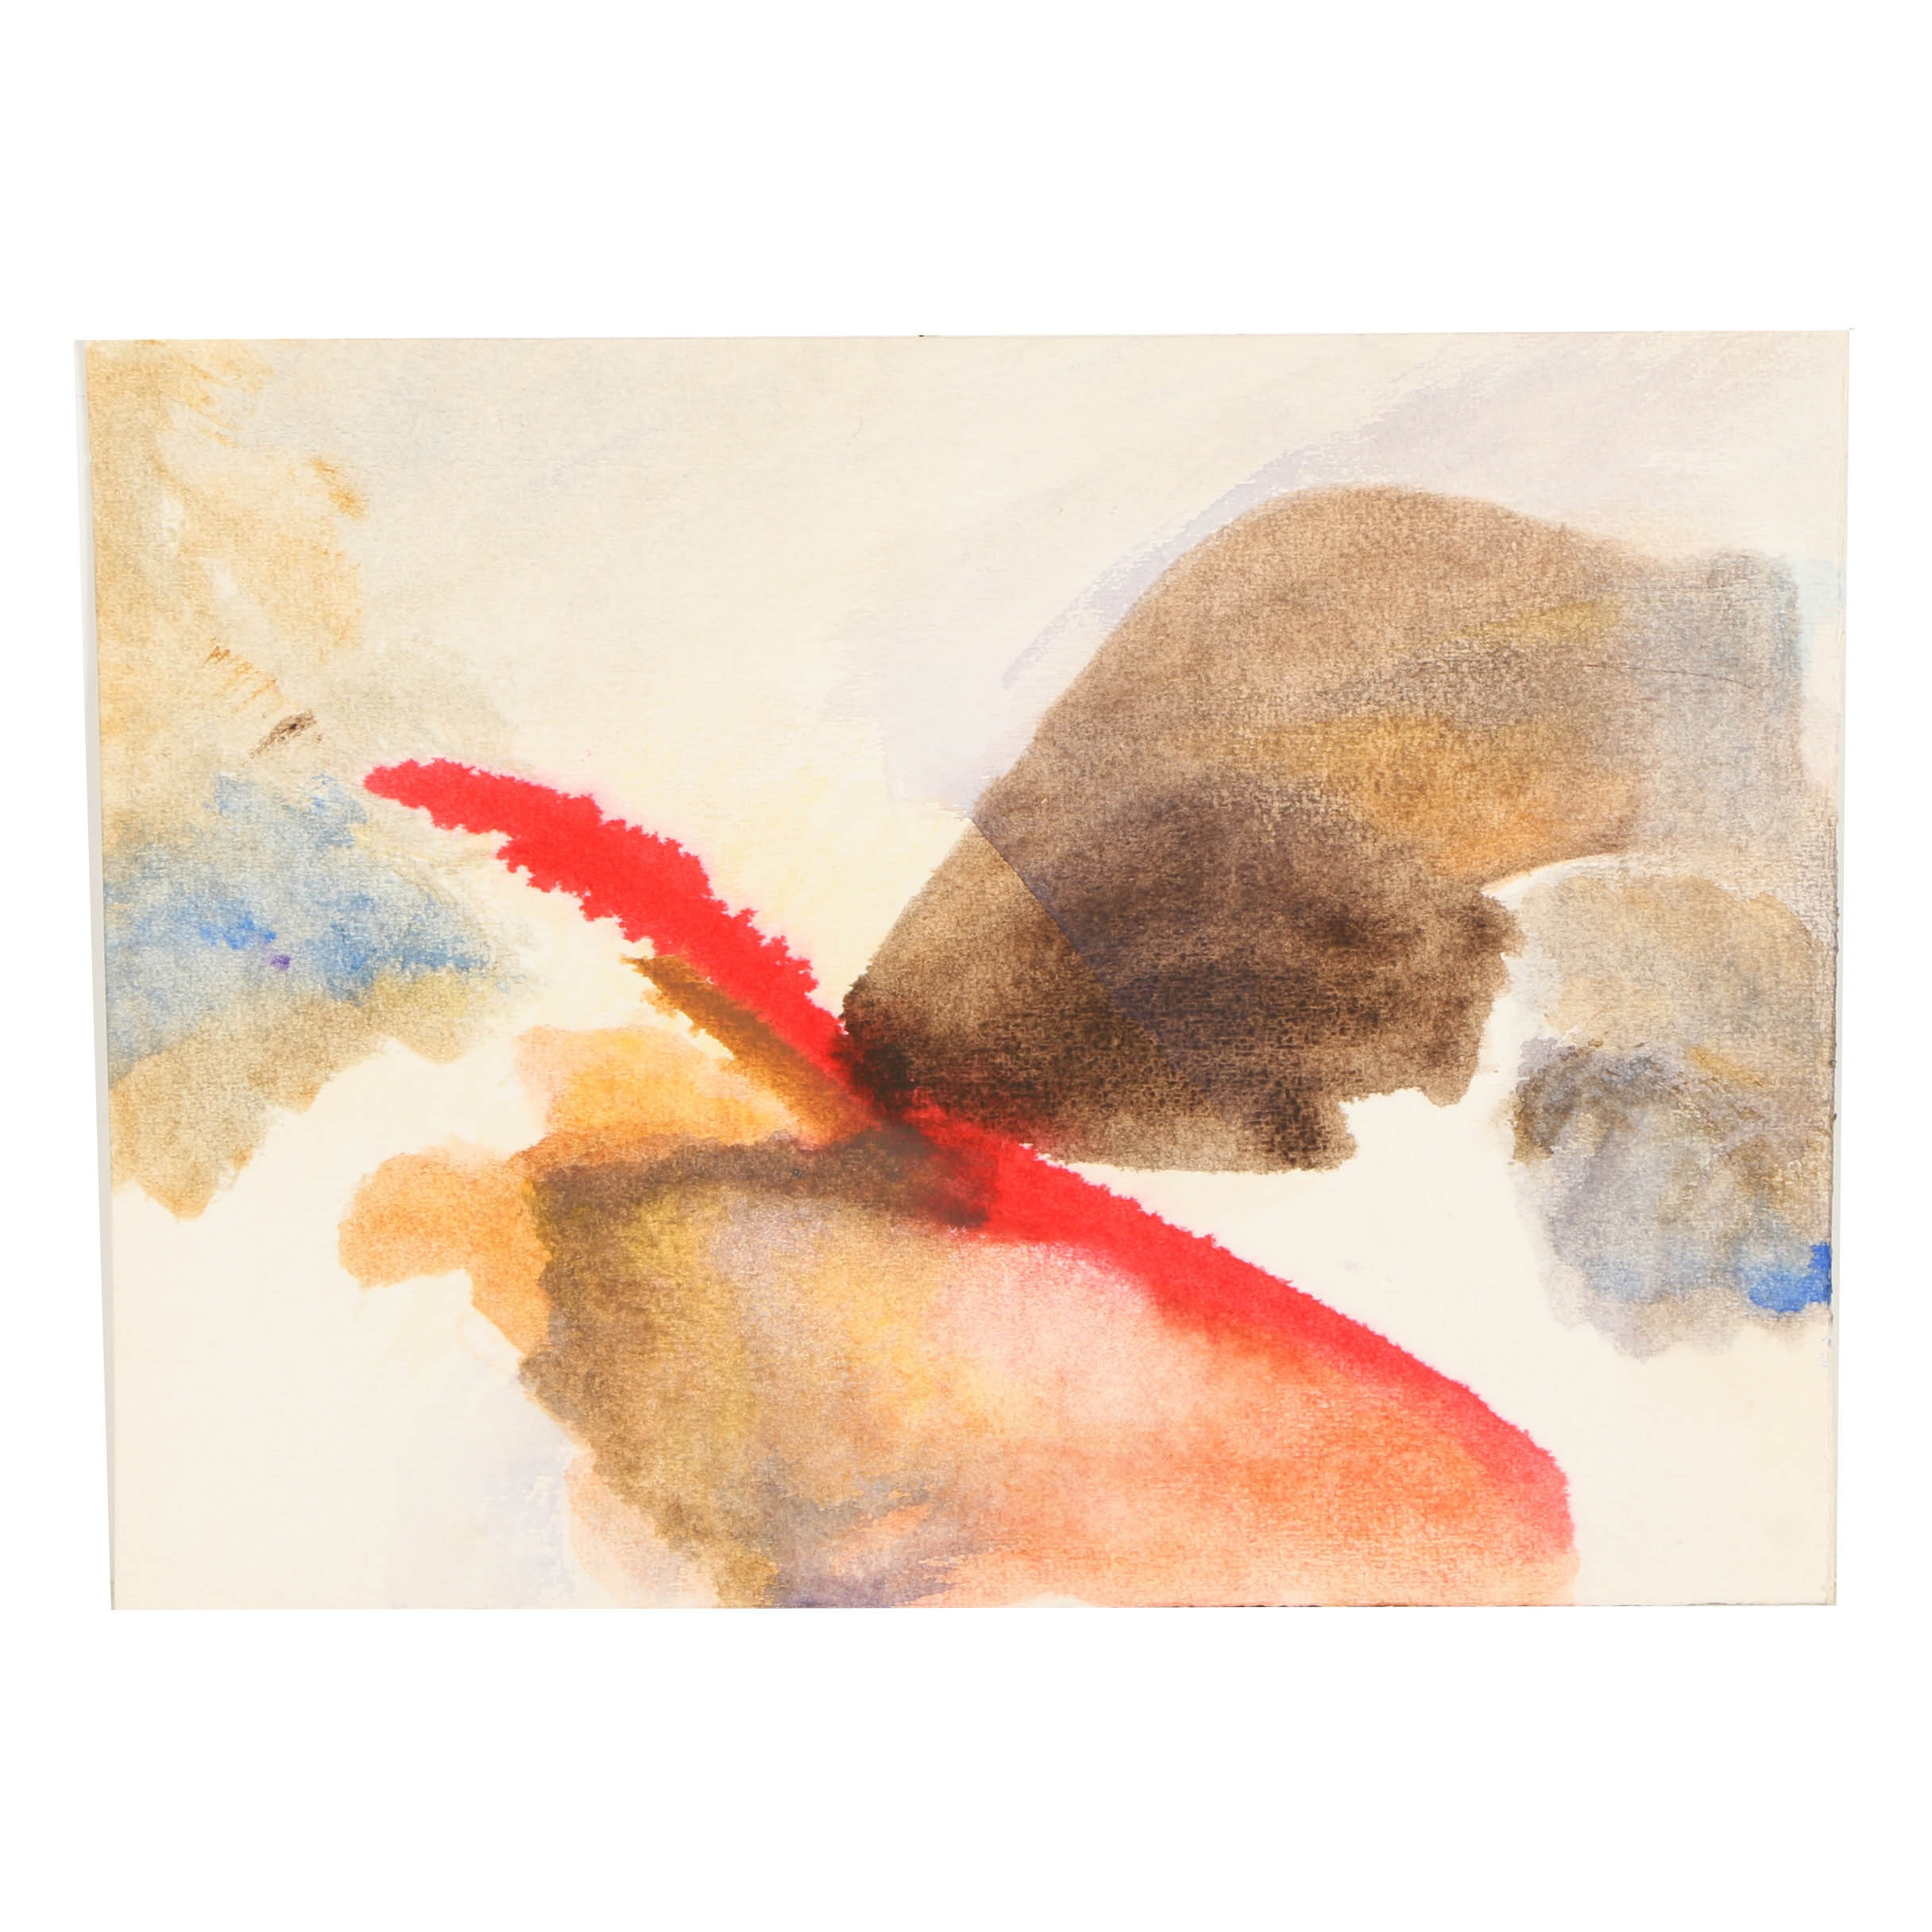 Beth Hertz Watercolor Painting on Paper of an Abstract Composition